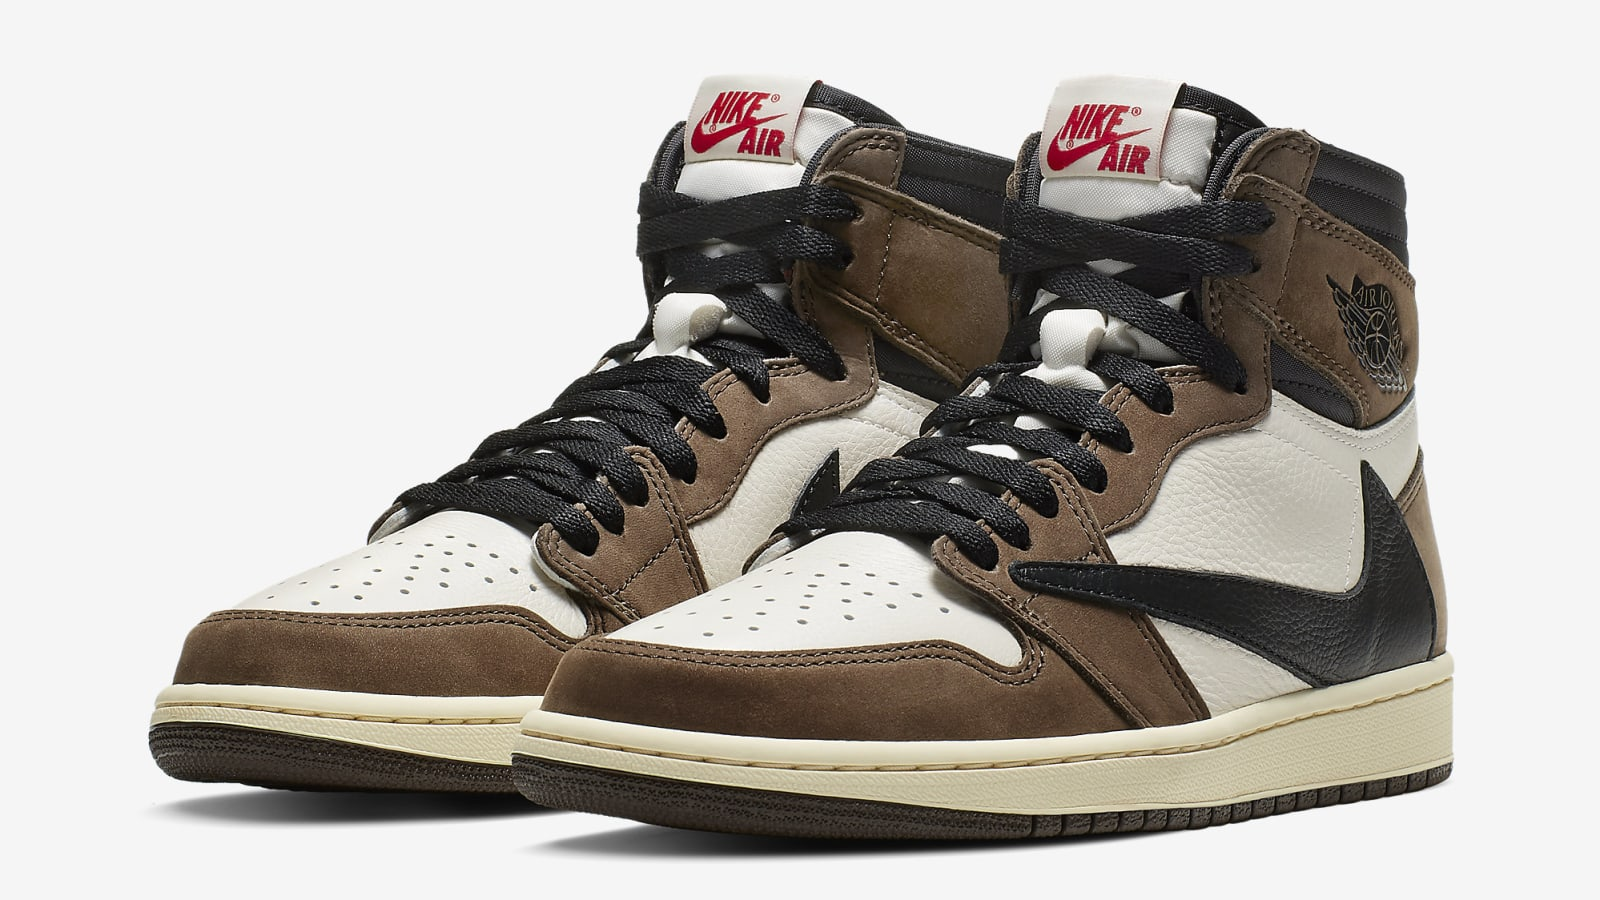 9852c124ebcacd Travis Scott s Air Jordan 1 Collaboration Sold Out in Less Than a Minute